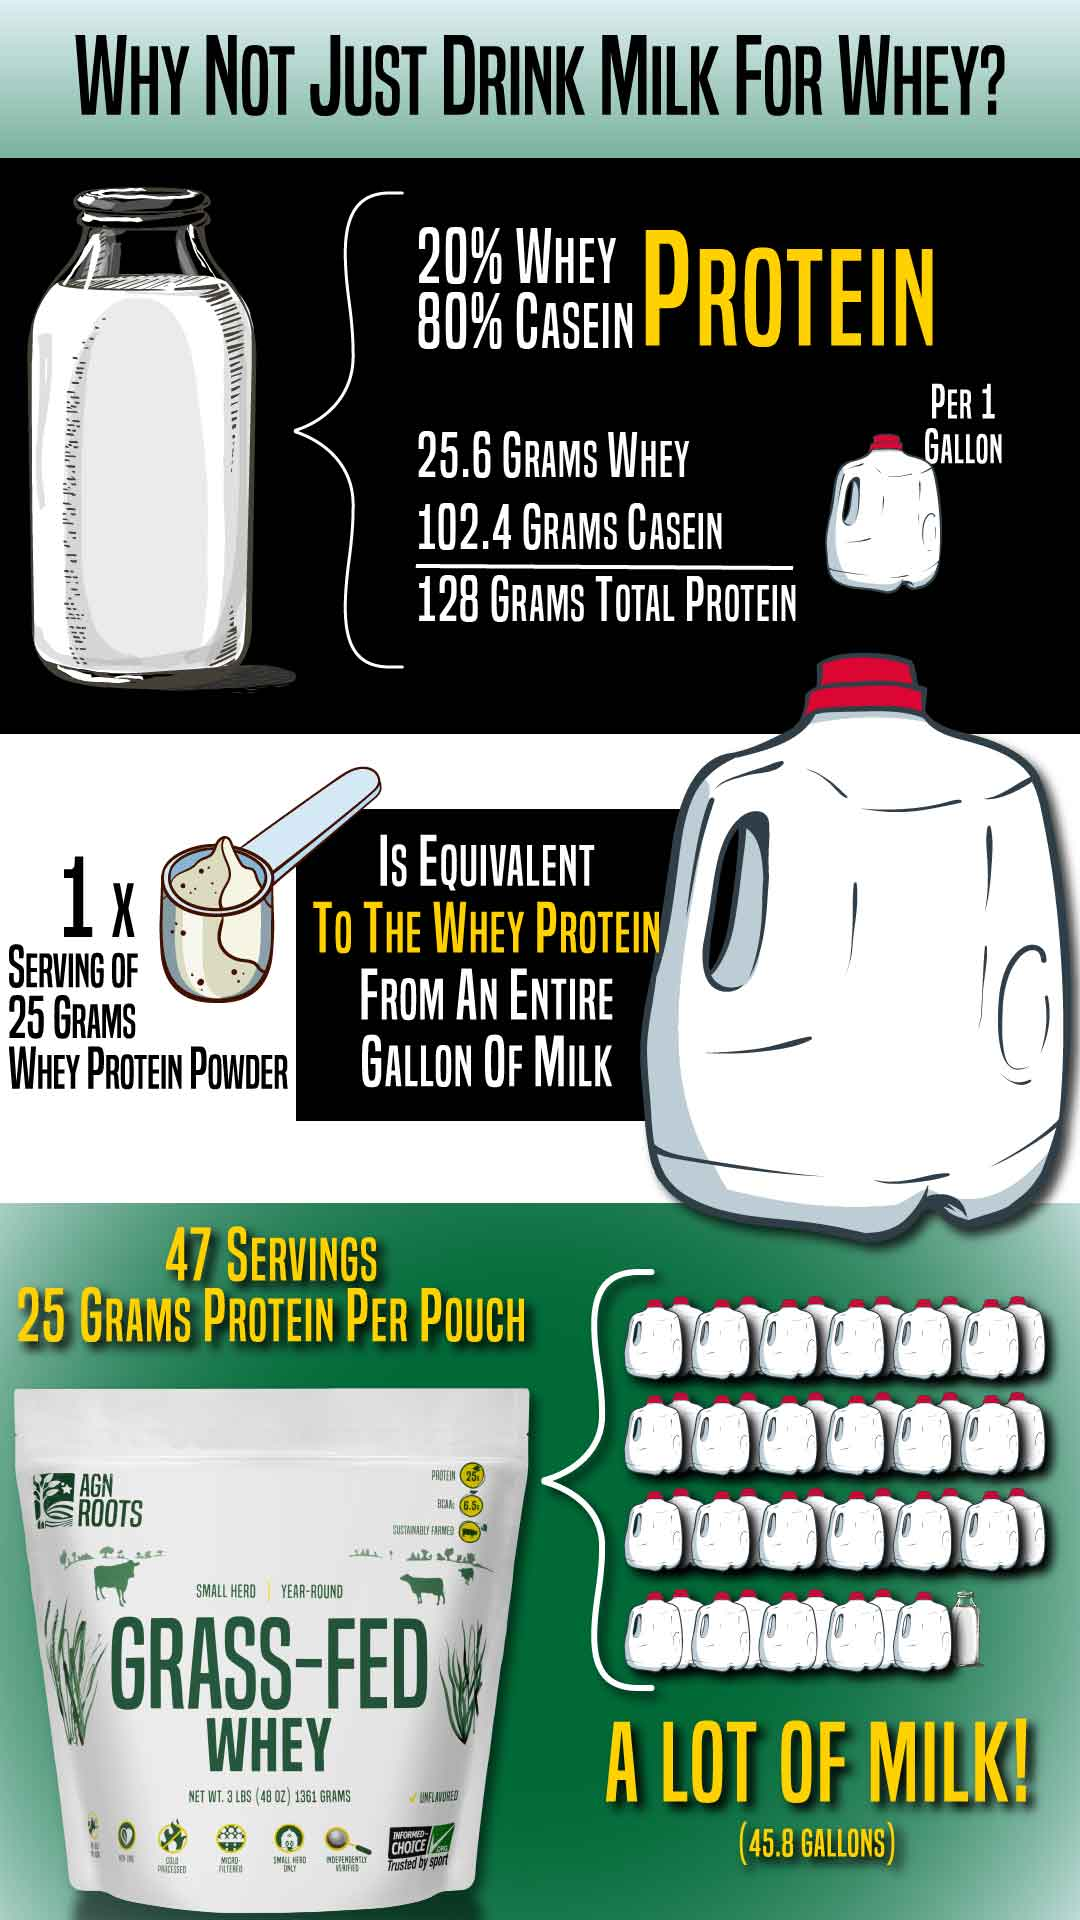 Whey Protein Powder Vs. Milk Infographic